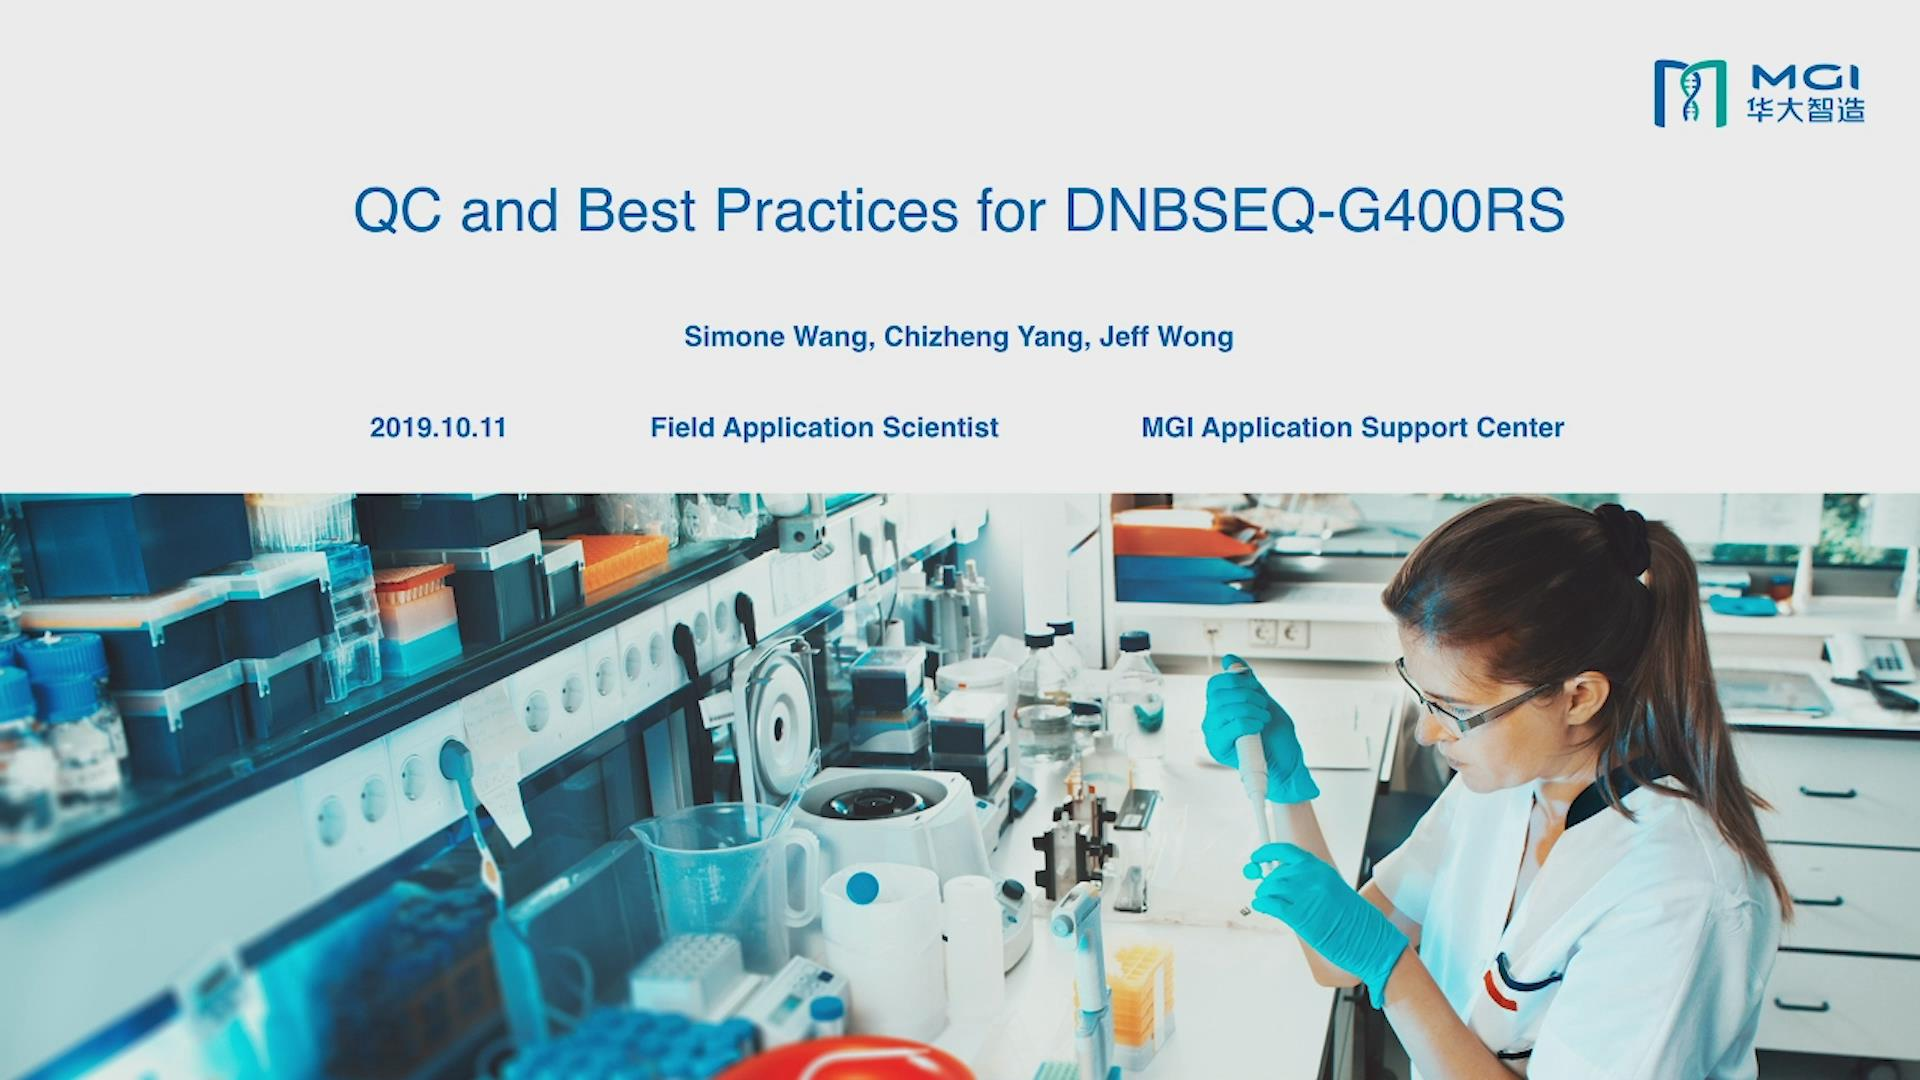 Quality Control for DNBSEQ™ Platforms and Best Practices for DNBSEQ-G400RS